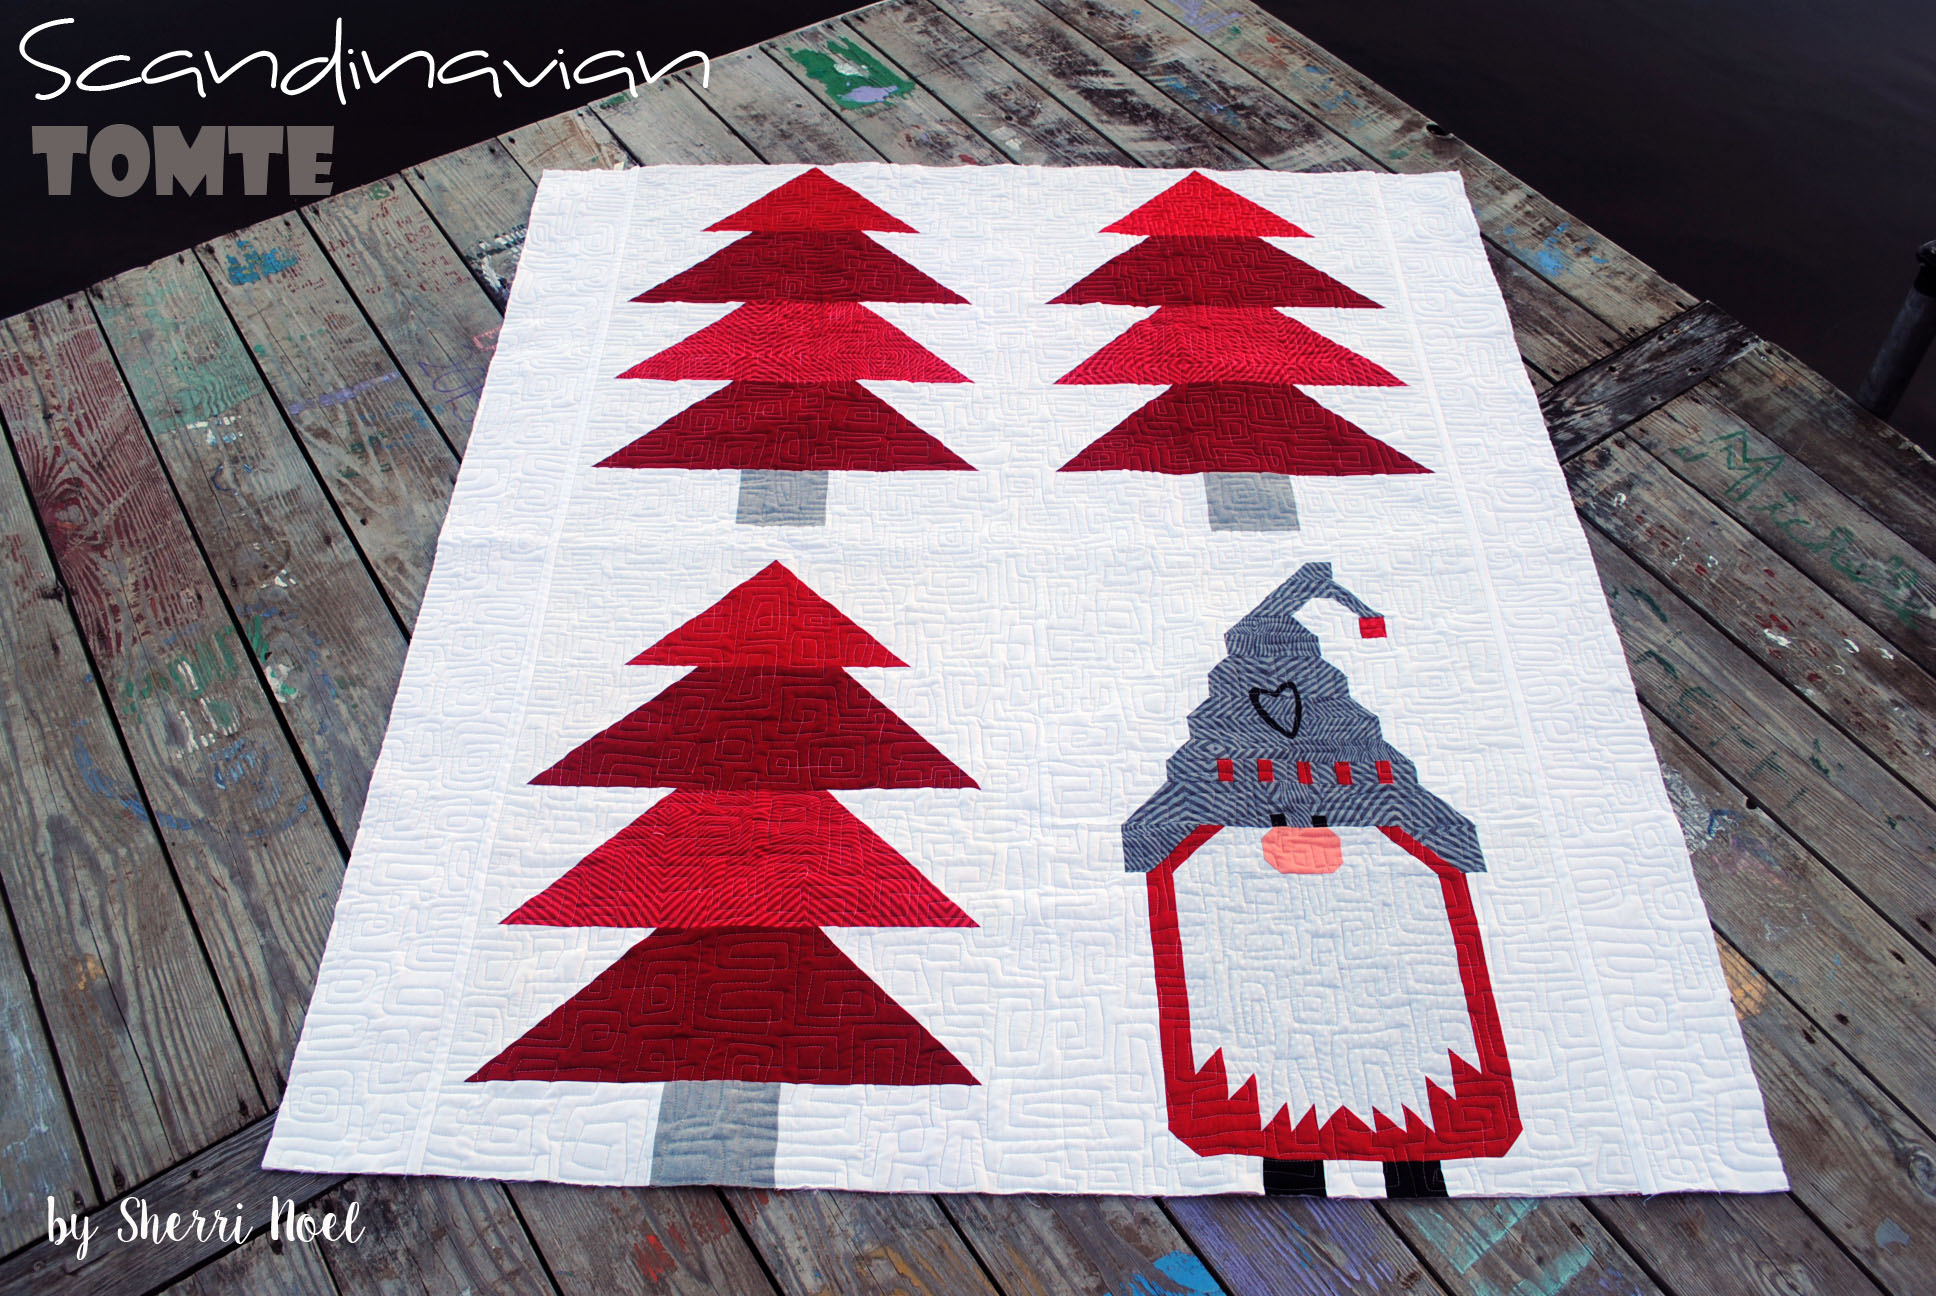 Christmas Quilt Patterns.Christmas Quilt Pattern Scandinavian Tomte